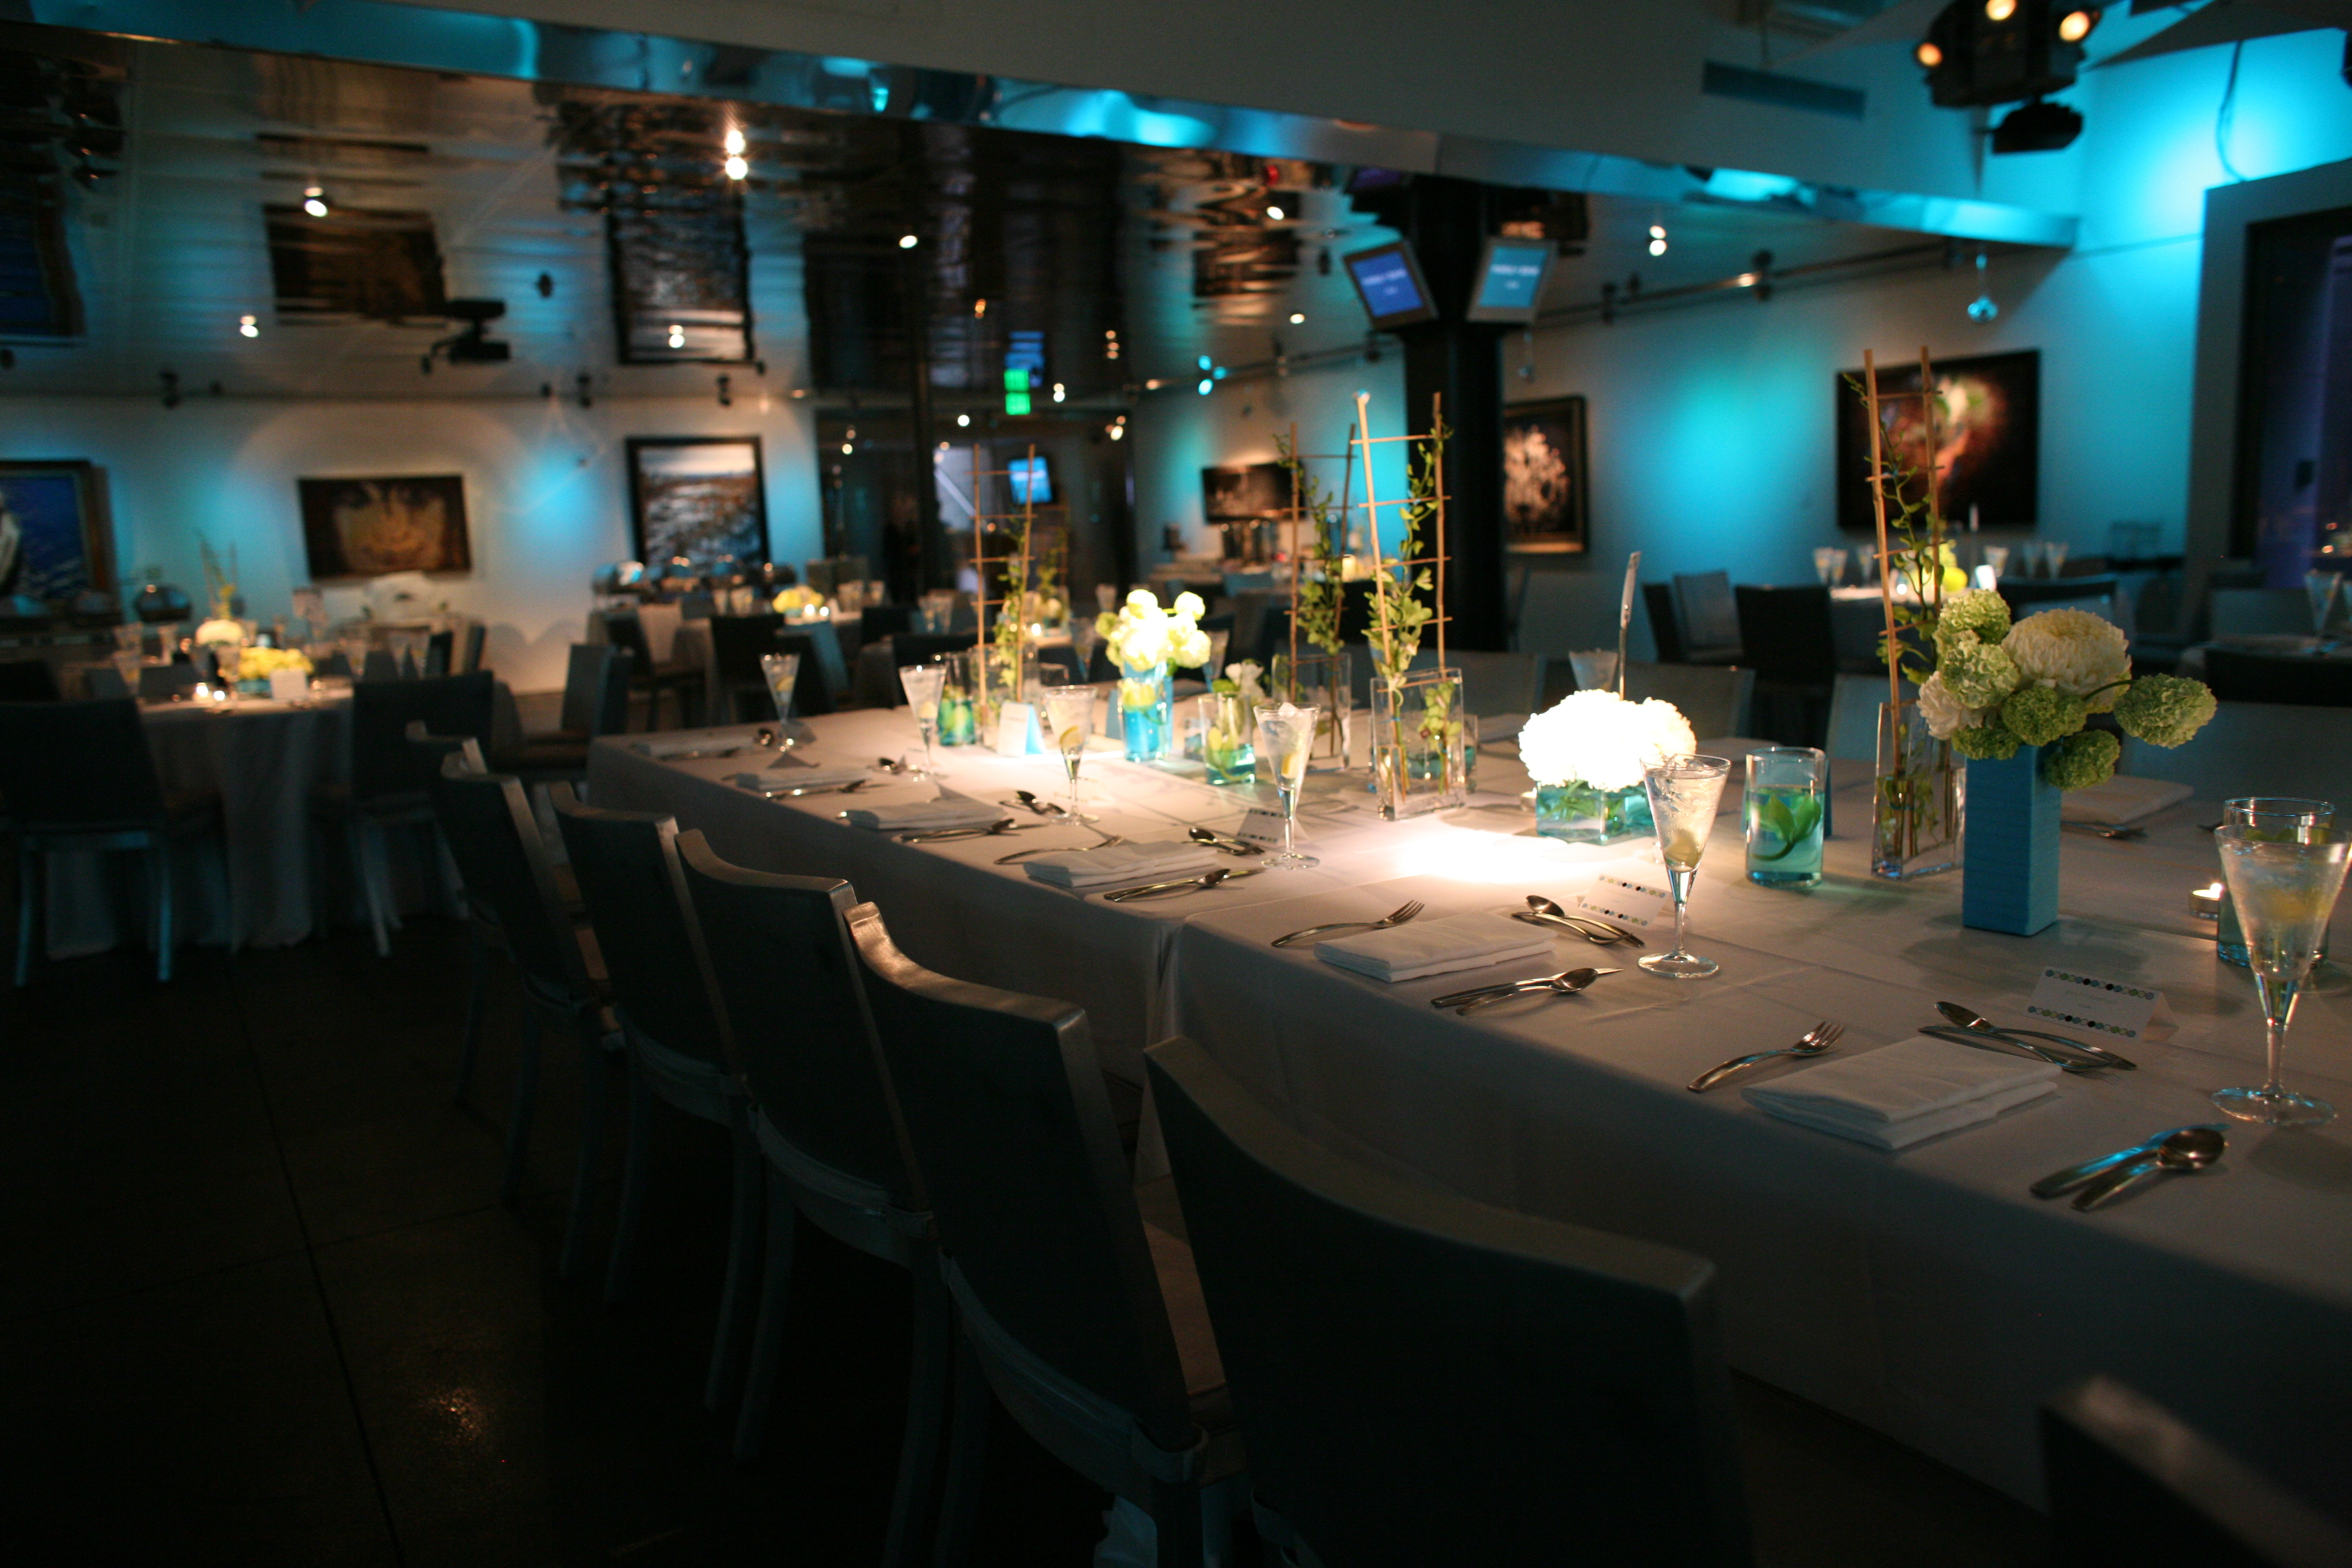 white, blue, green, Centerpieces, Lighting, Table, Orchids, Head